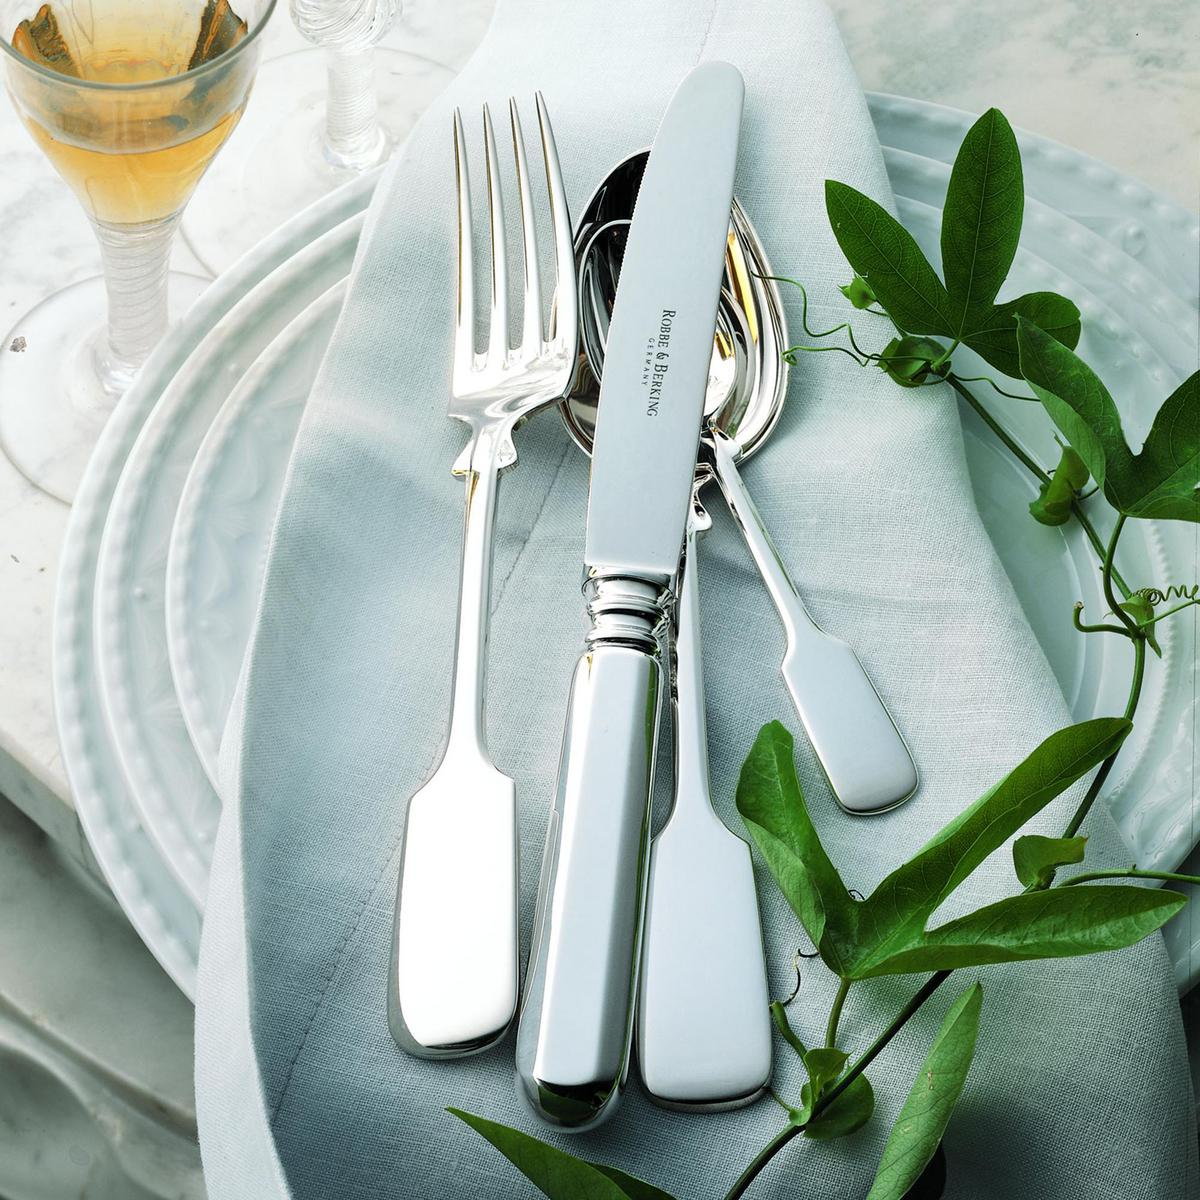 robbe berking old fiddle cutlery silverplated. Black Bedroom Furniture Sets. Home Design Ideas